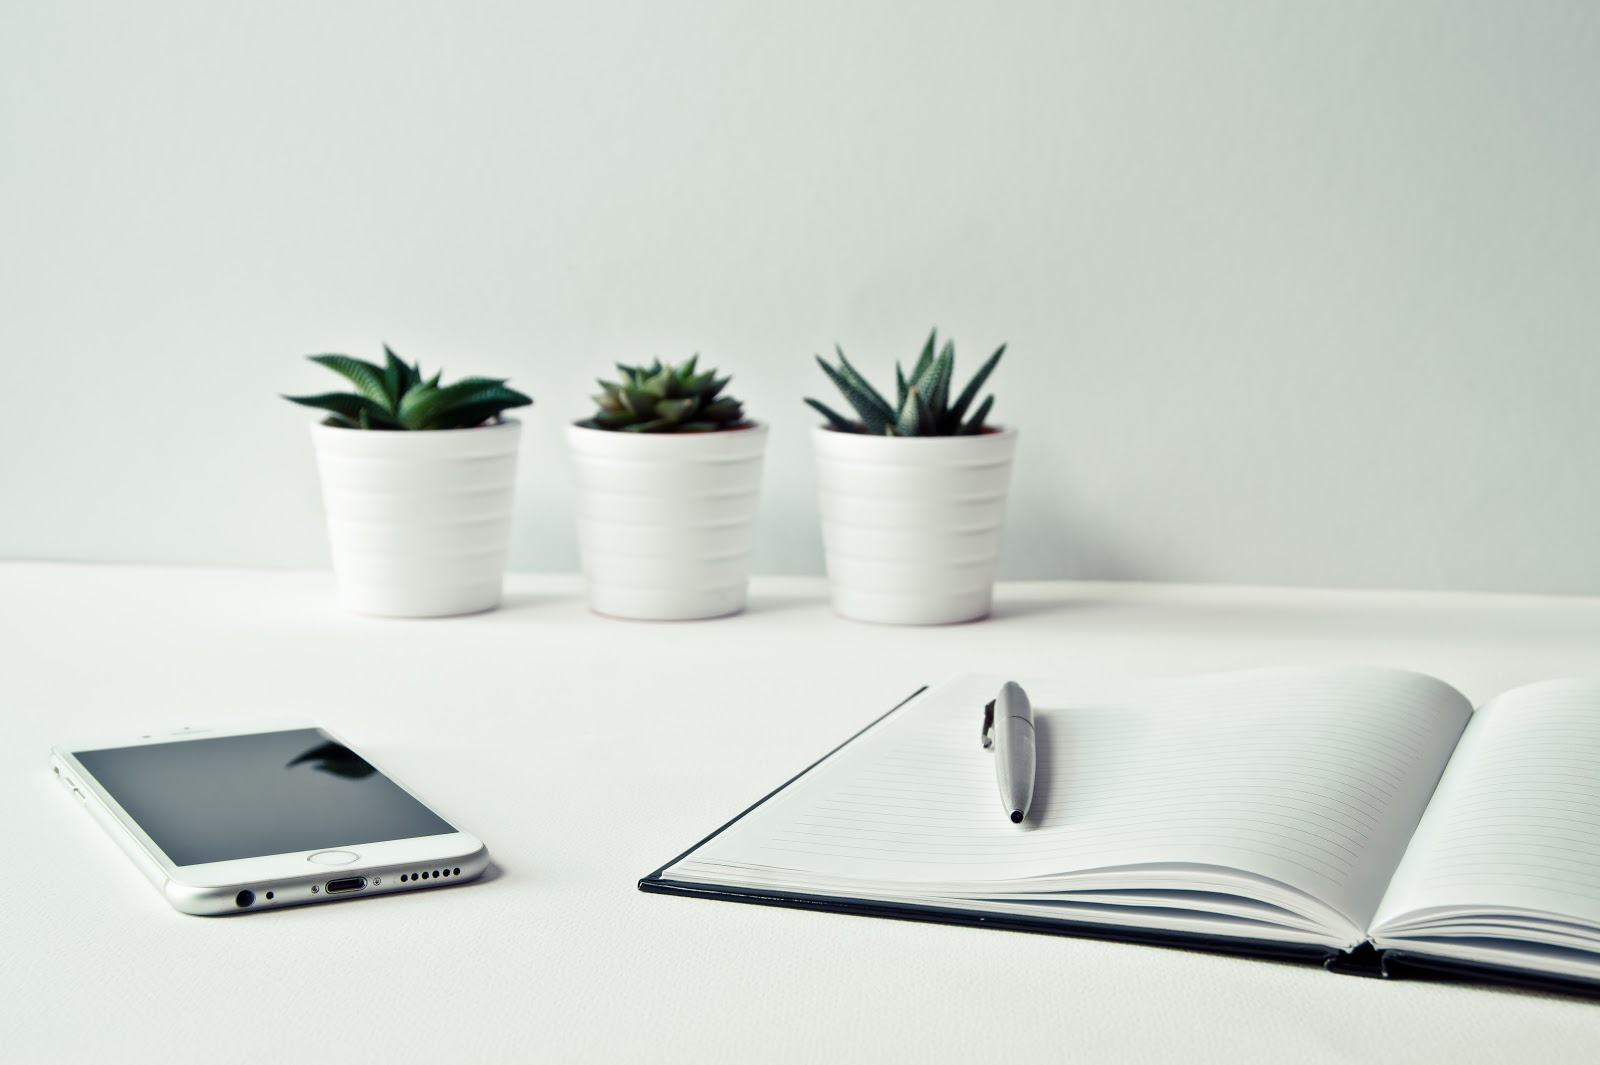 three-white-ceramic-pots-with-green-leaf-plants-near-open-notebook-with-click-pen-on-top- growing your business sustainably